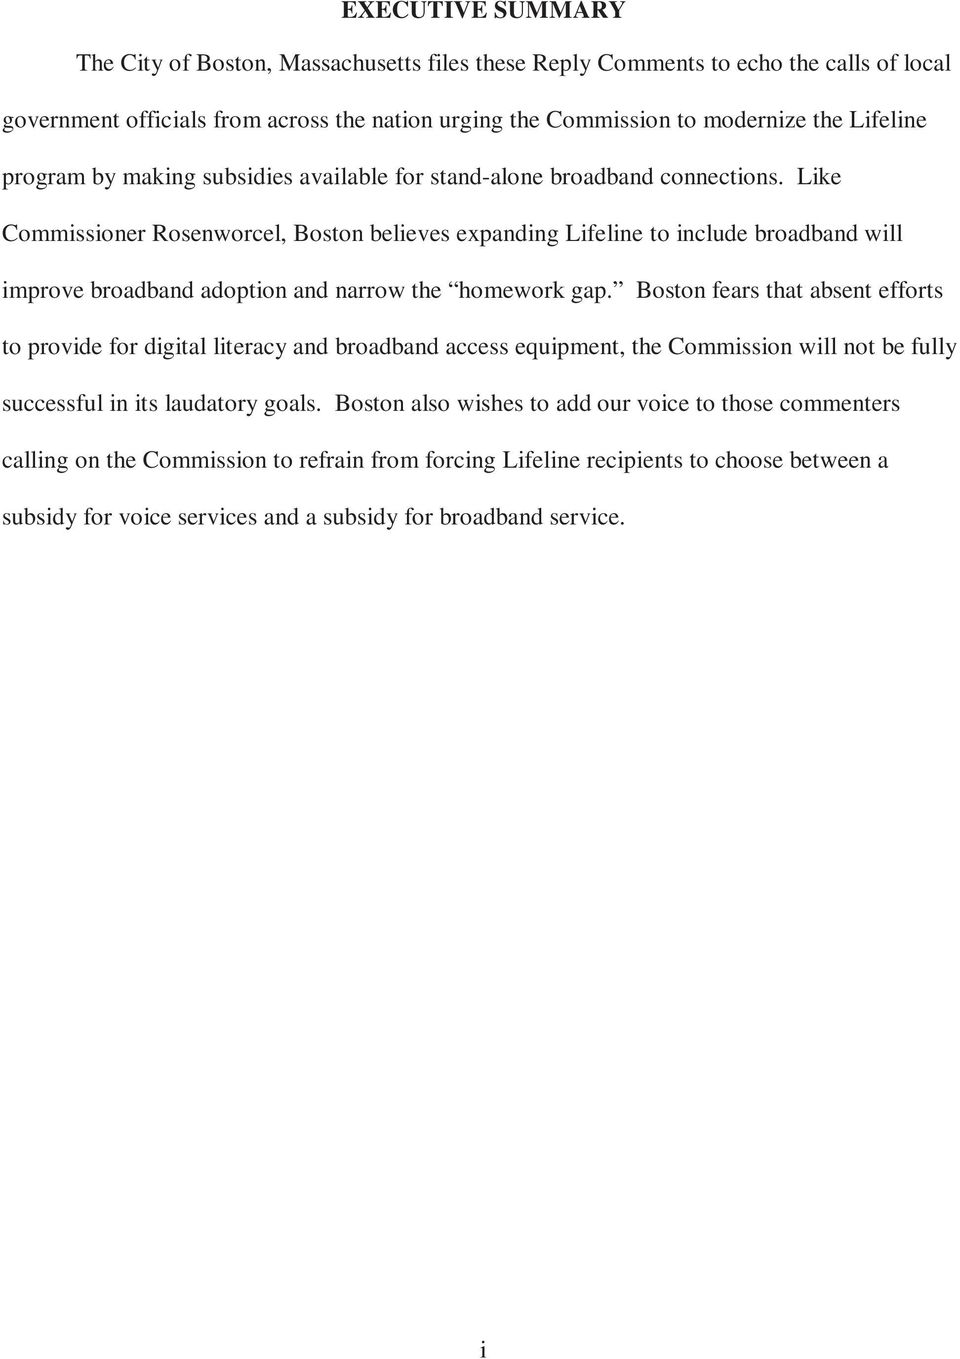 Like Commissioner Rosenworcel, Boston believes expanding Lifeline to include broadband will improve broadband adoption and narrow the homework gap.